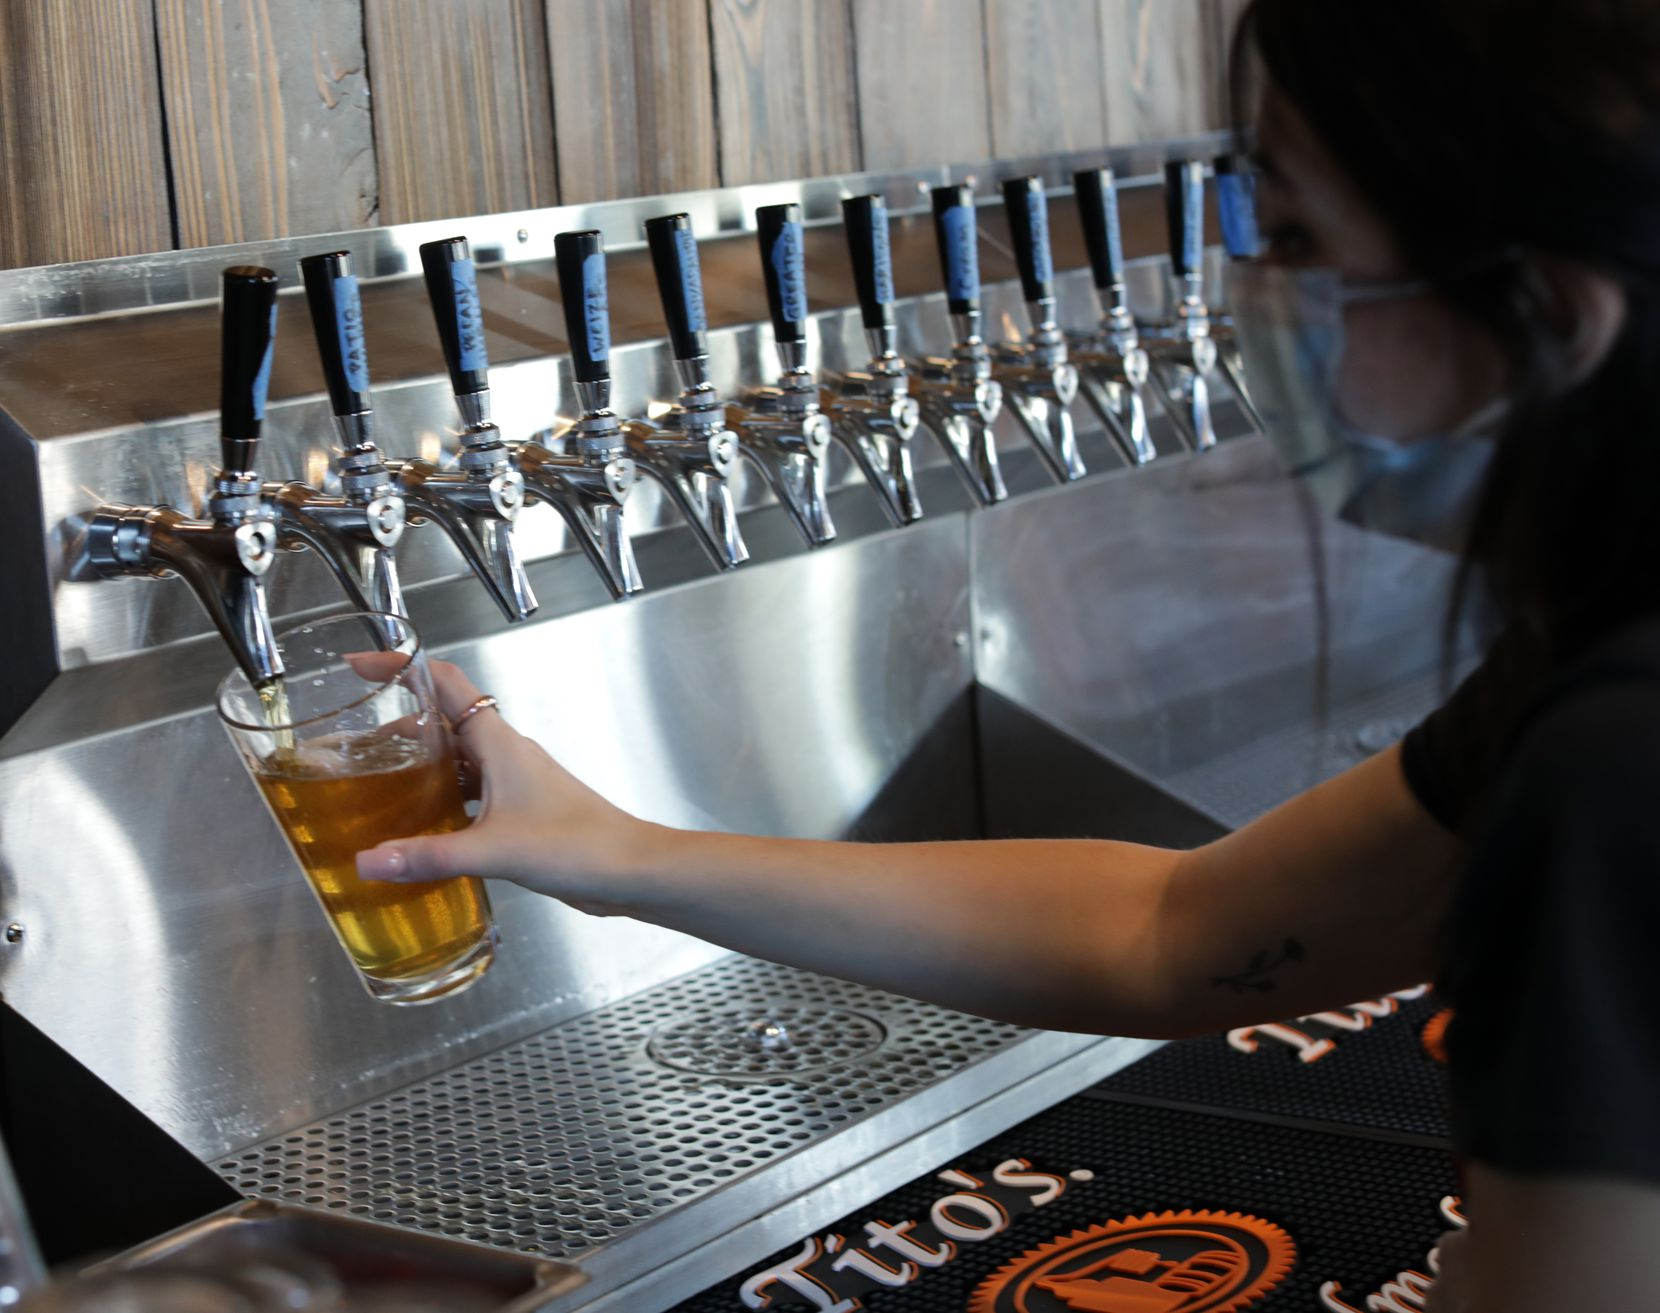 Emily Fuselier pours a pint of Good Intentions beer at Cedar Creek Brewhouse and Eatery in Farmers Branch.